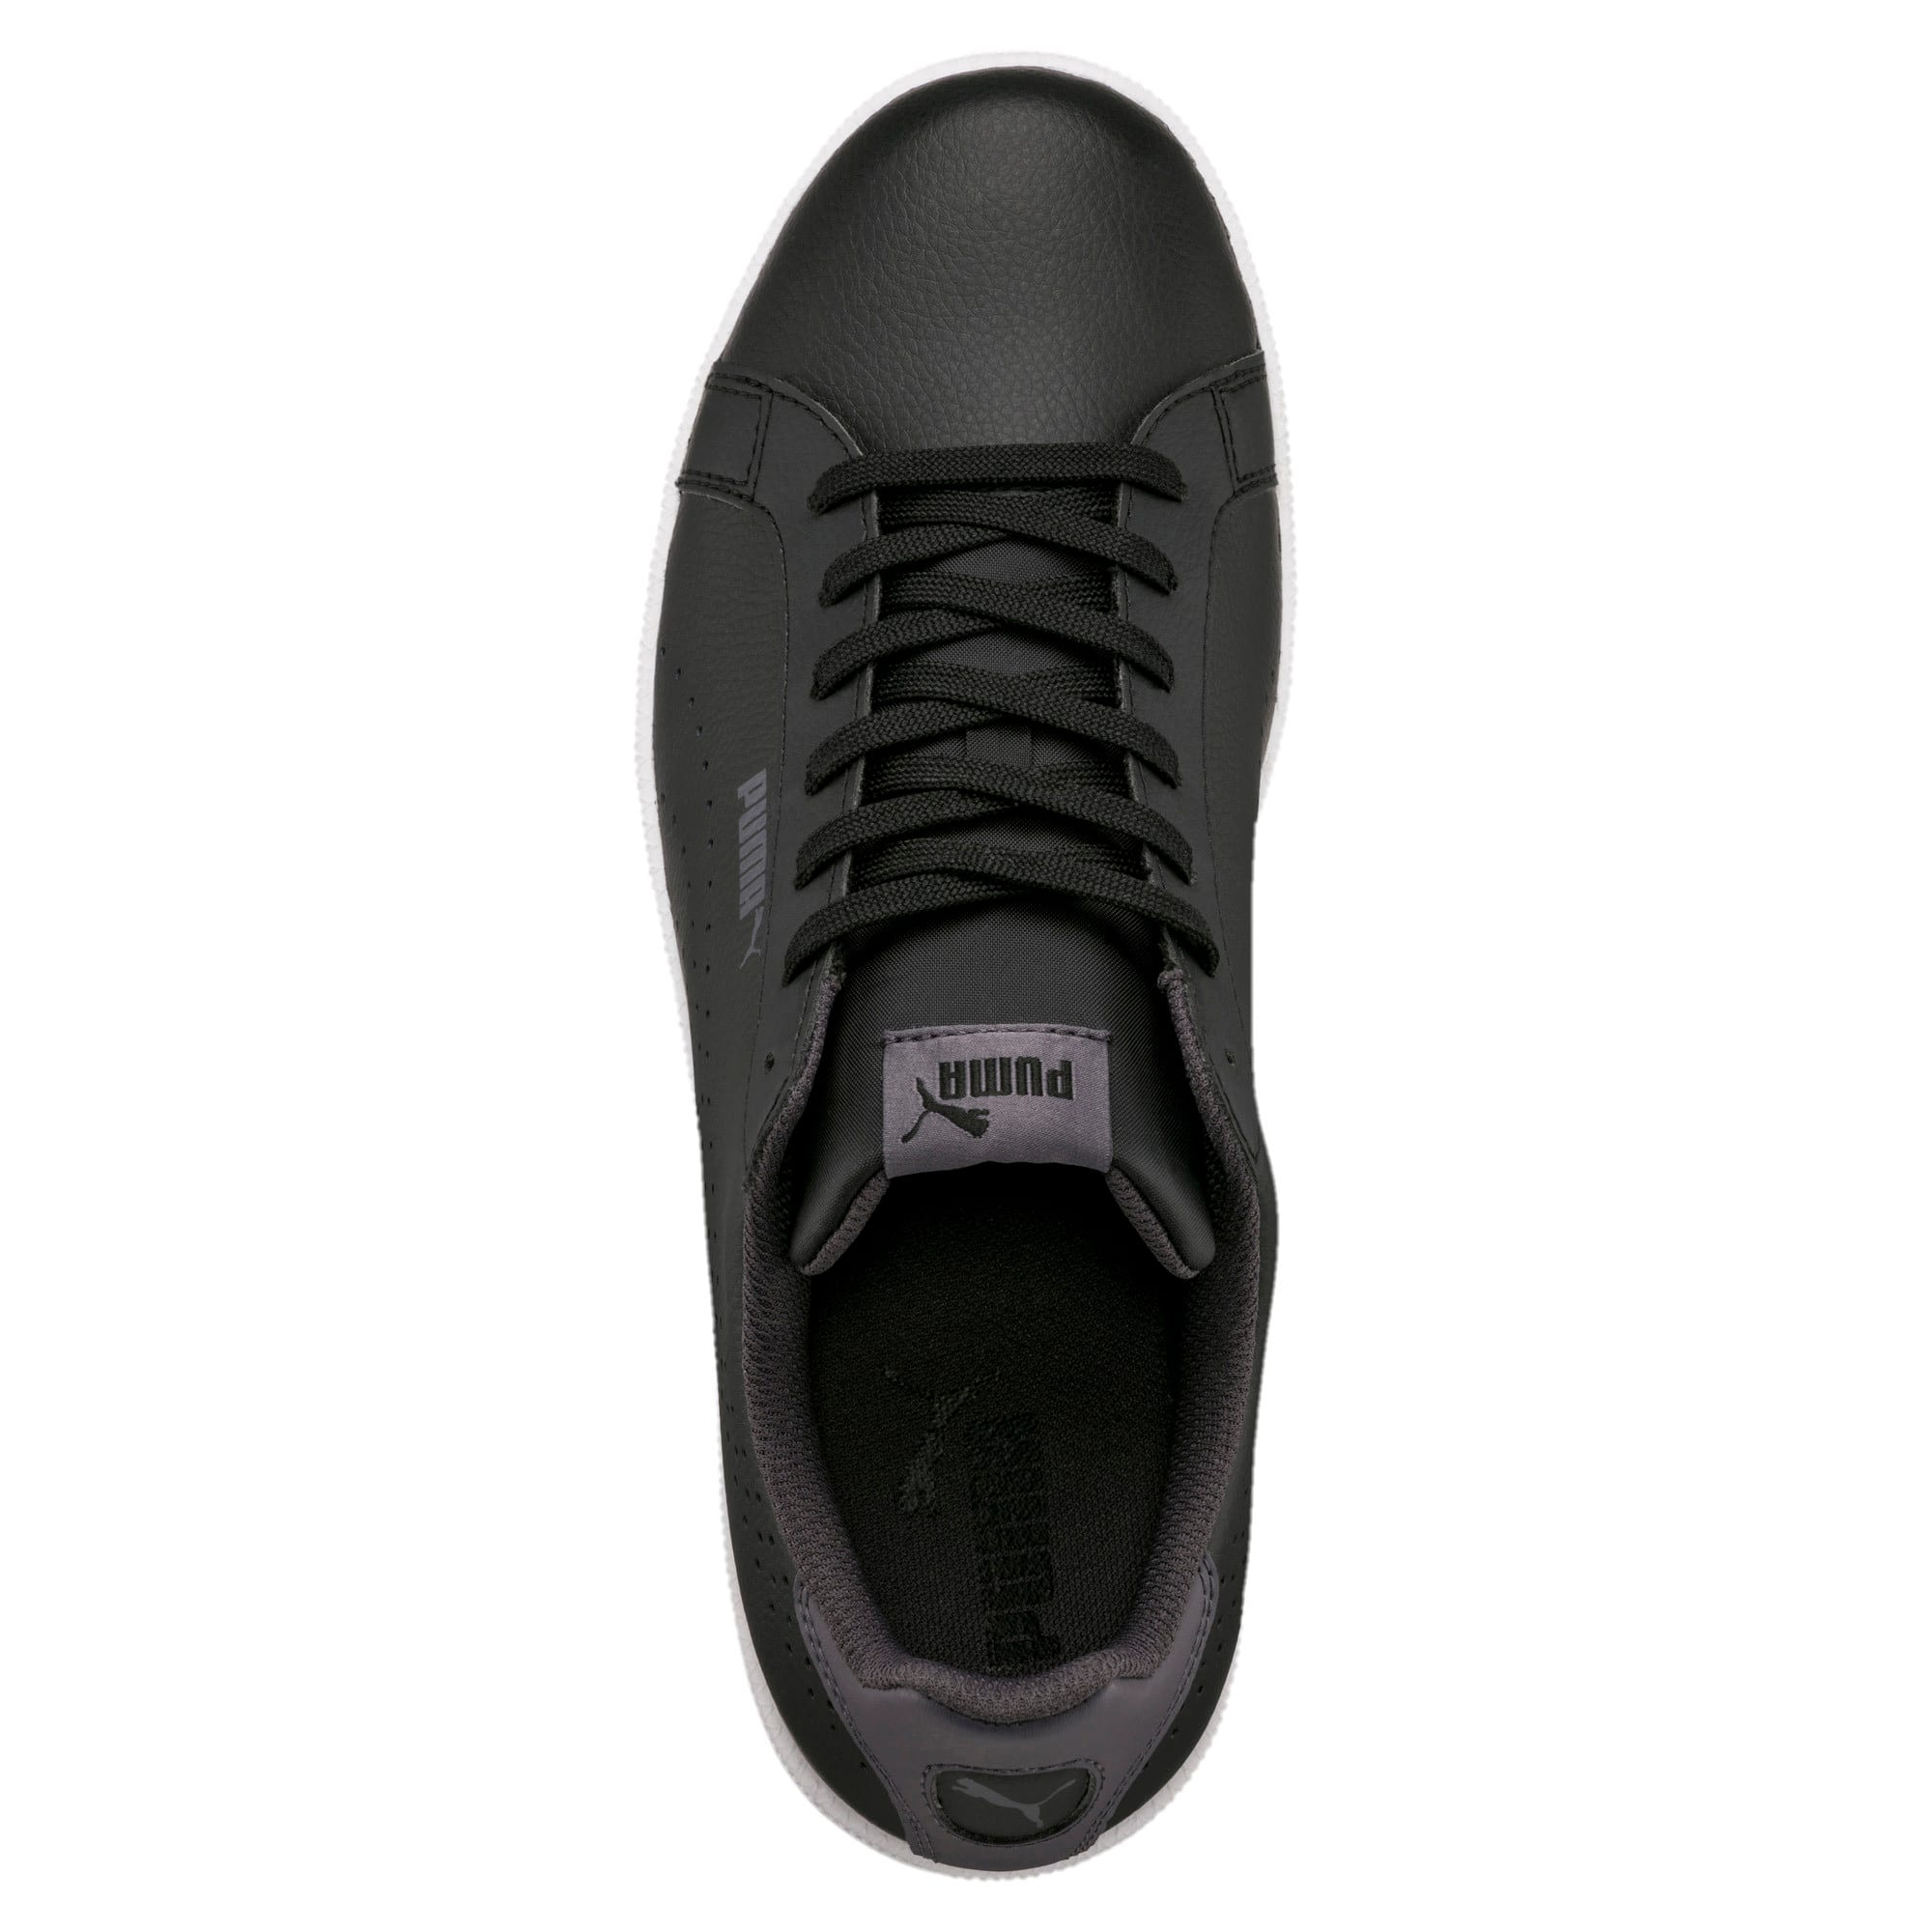 Thumbnail 5 of Smash Perf Trainers, Puma Black-Periscope, medium-IND